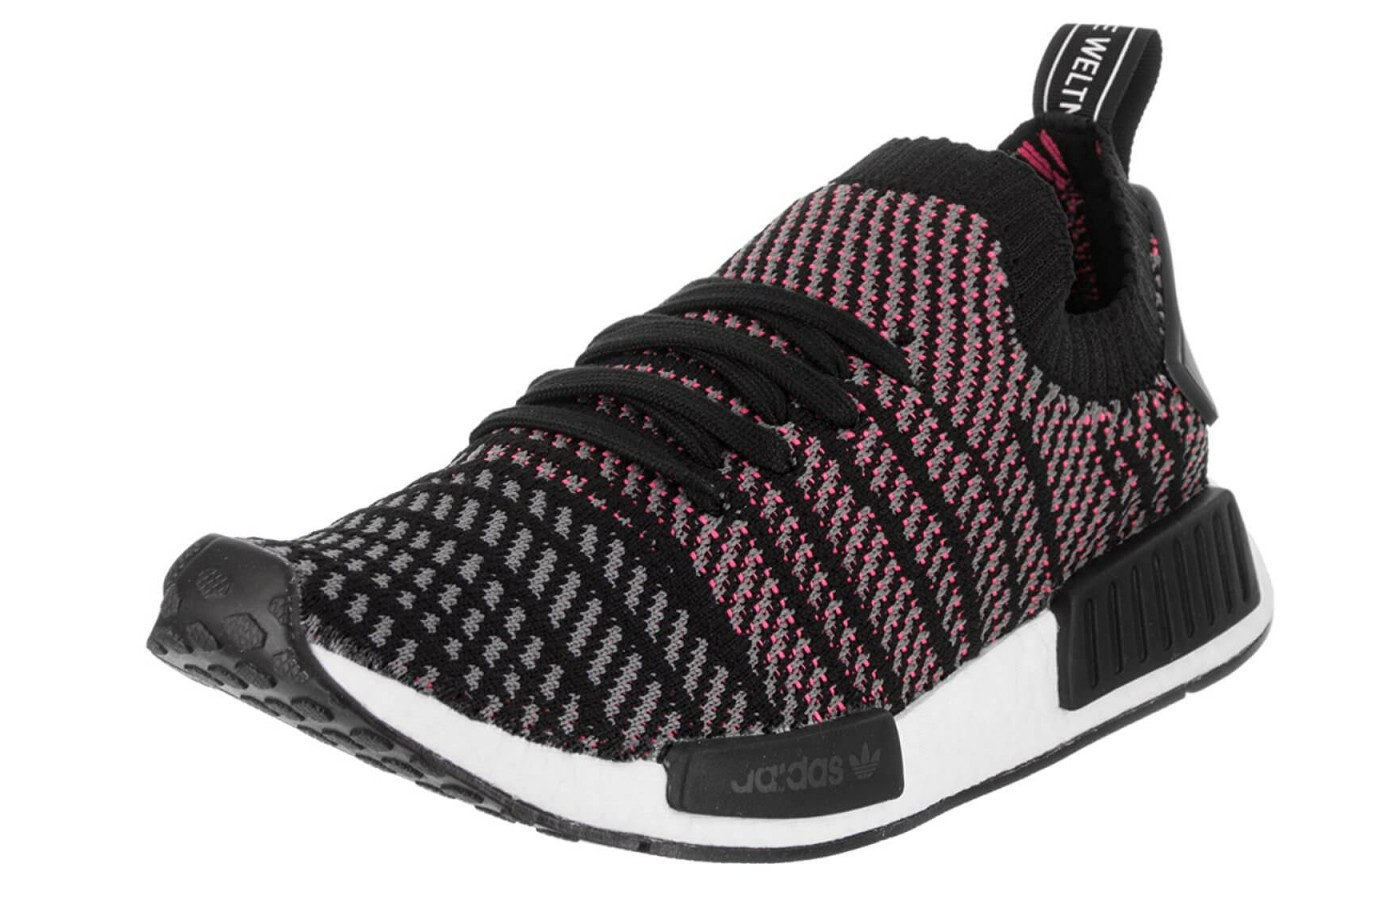 3f4b04f33 The Adidas NMD R1 Stlt Primeknit features a Primeknit upper ...